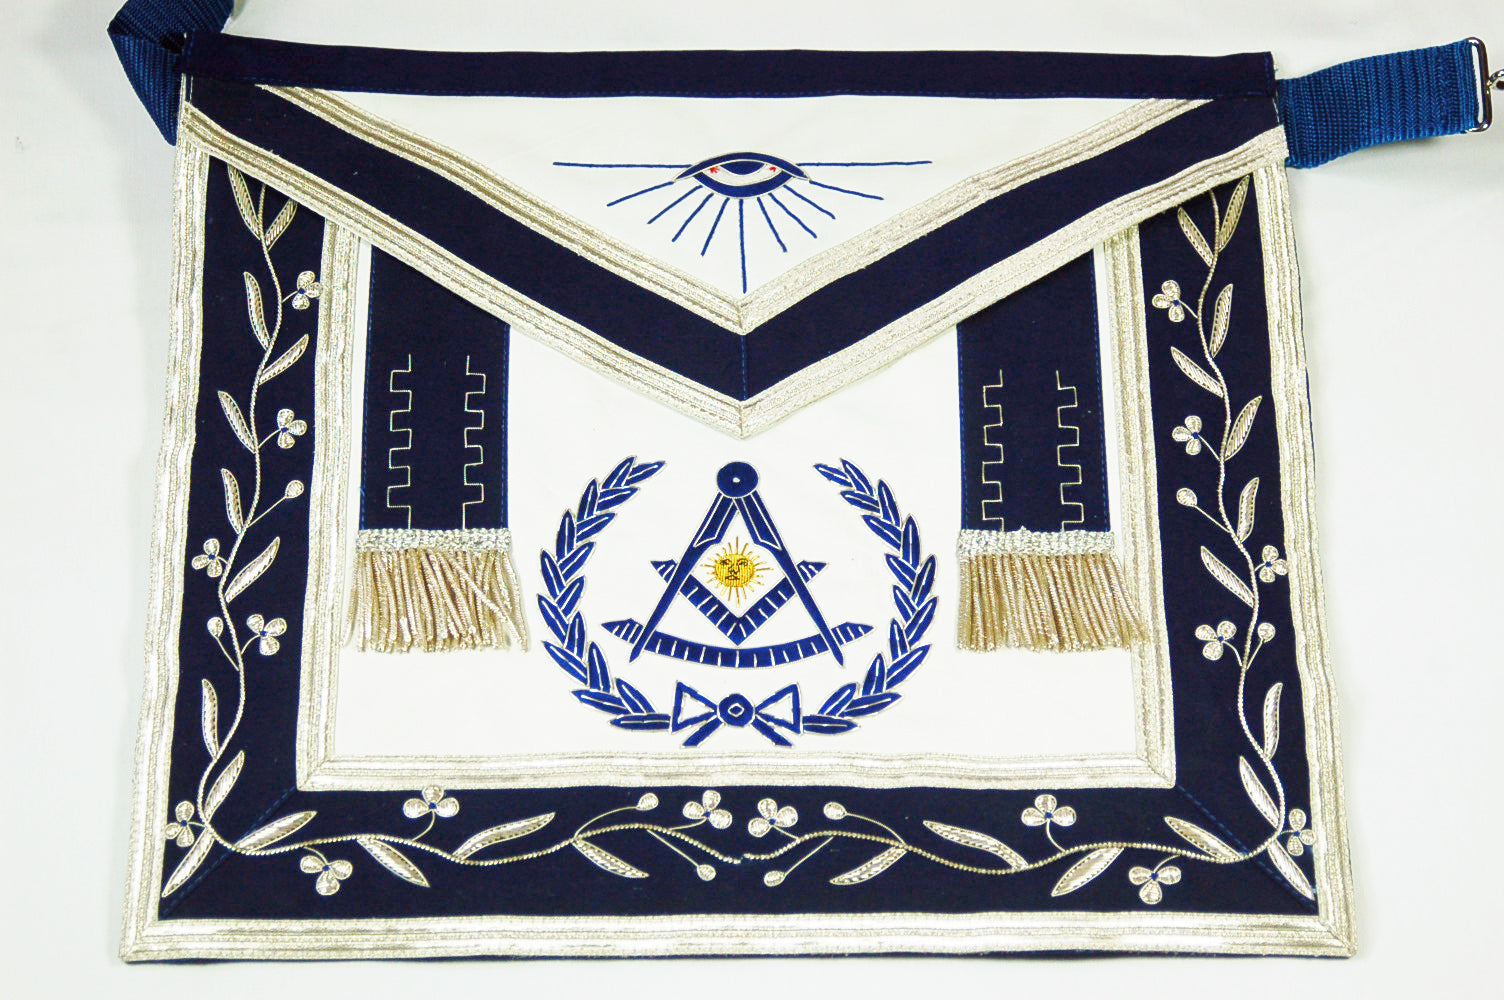 Past Master Aprons - Dean and Associates Masonic Aprons